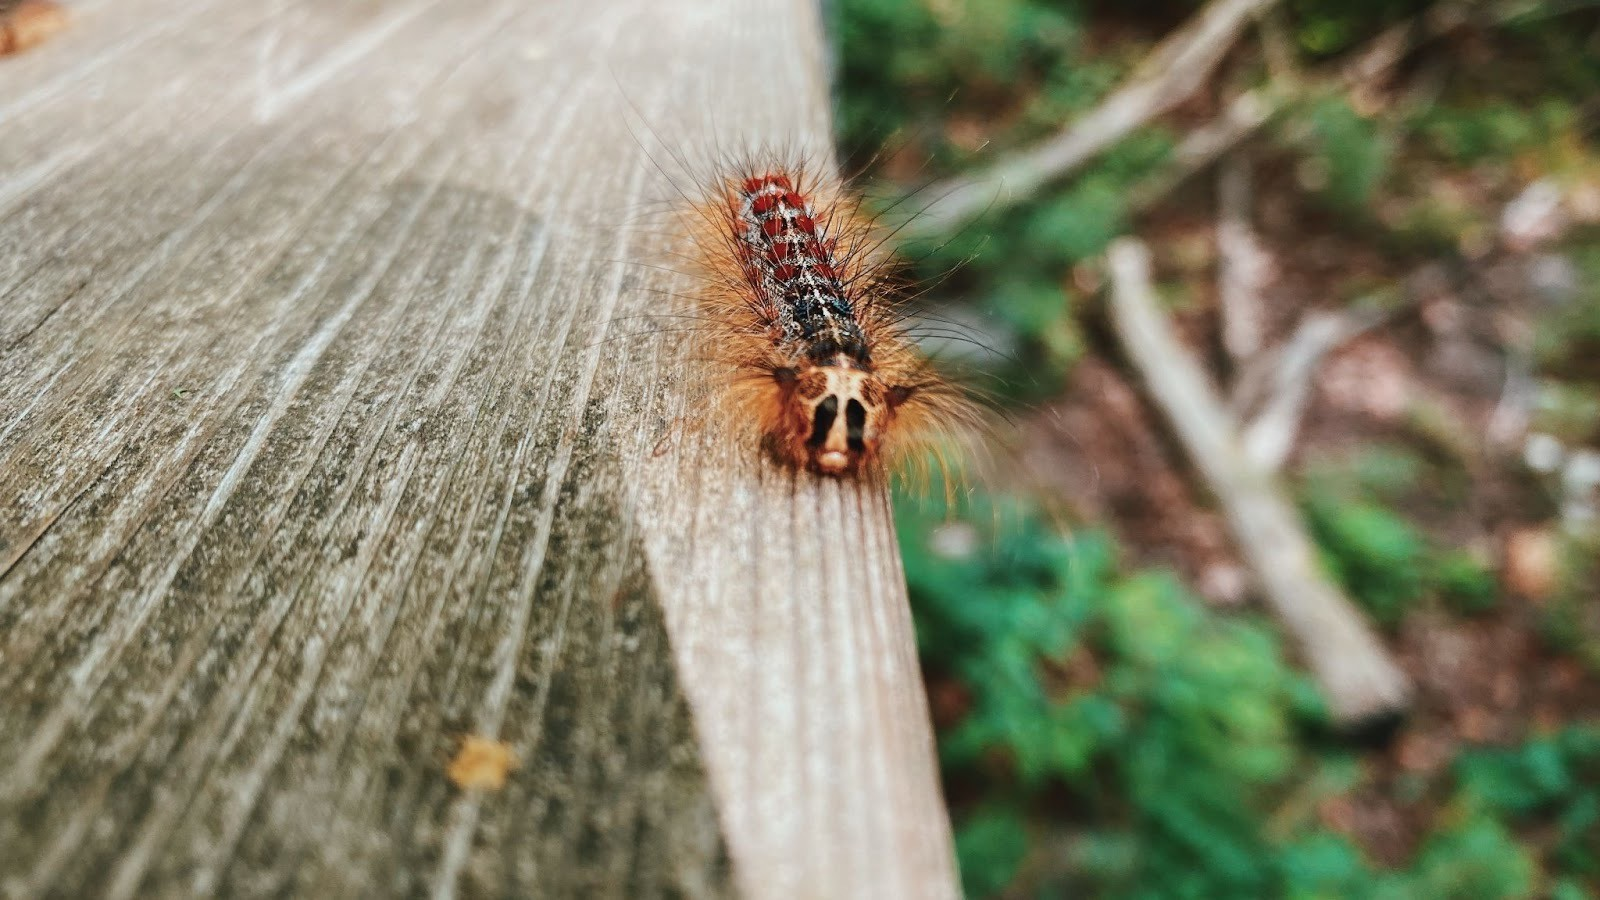 The very hungry caterpillars crawling all over Mississauga